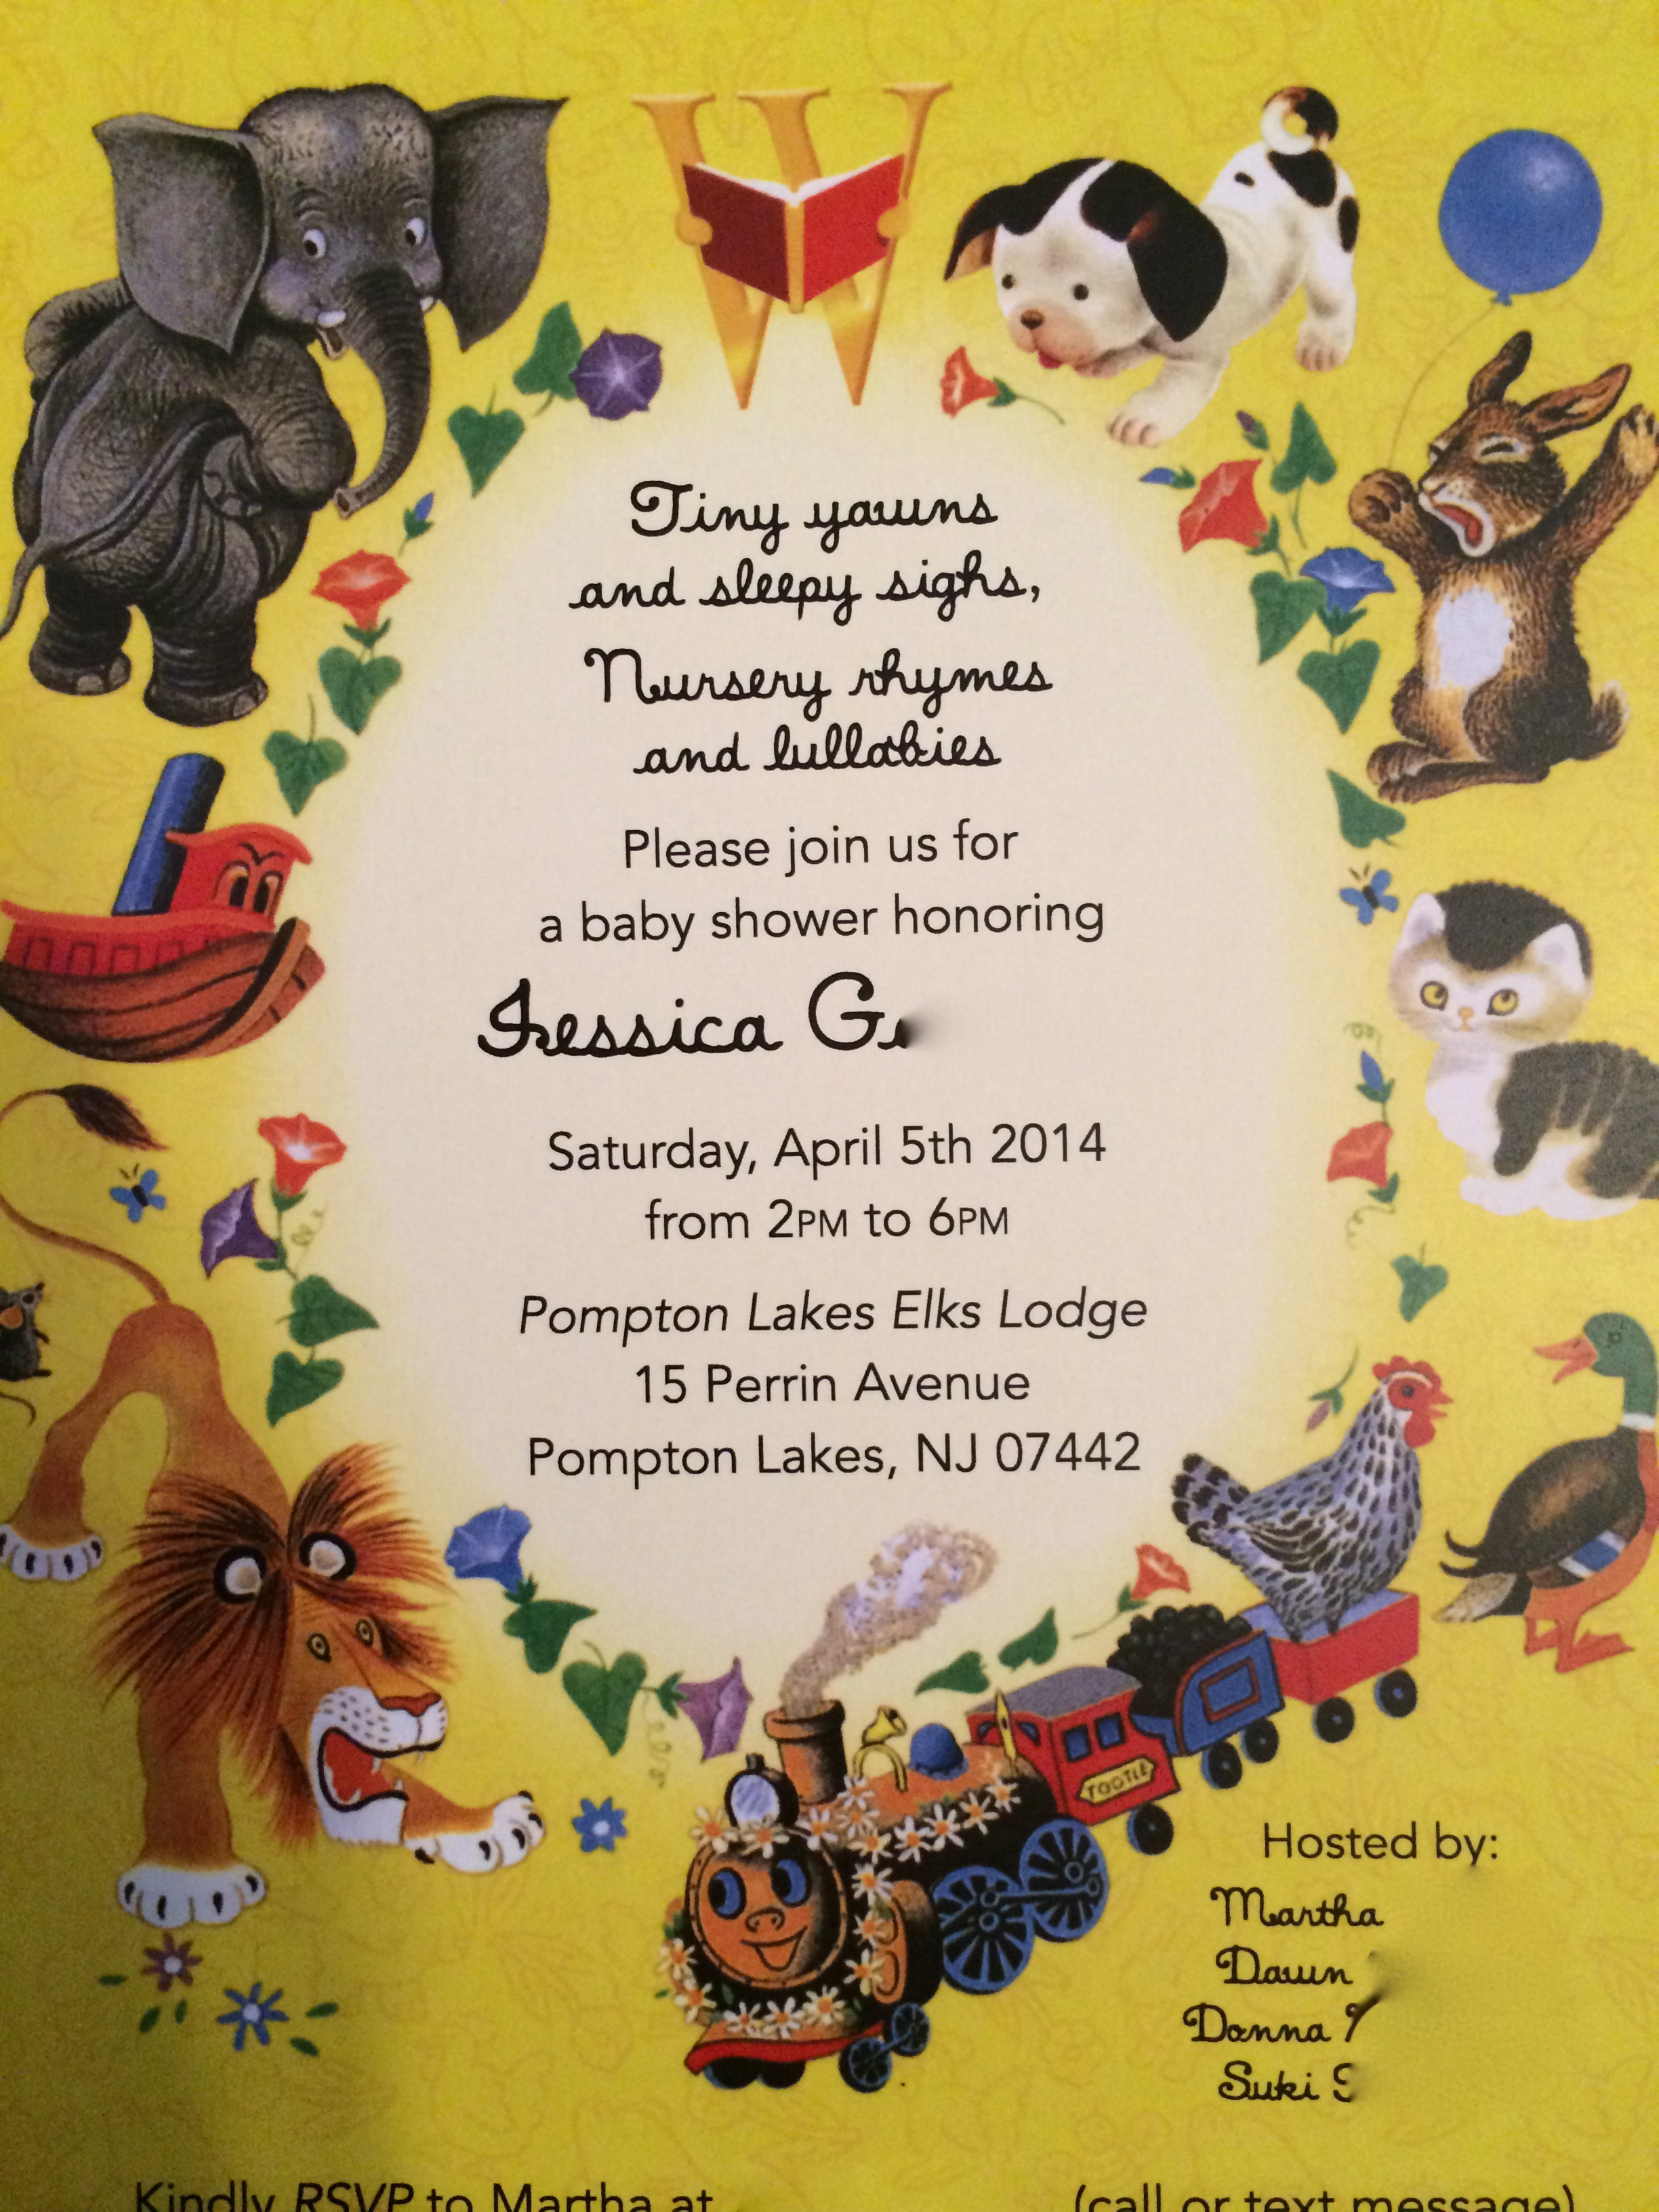 I Hate Being An Aw But My Shower Invite Is Too Darn Cute Not To